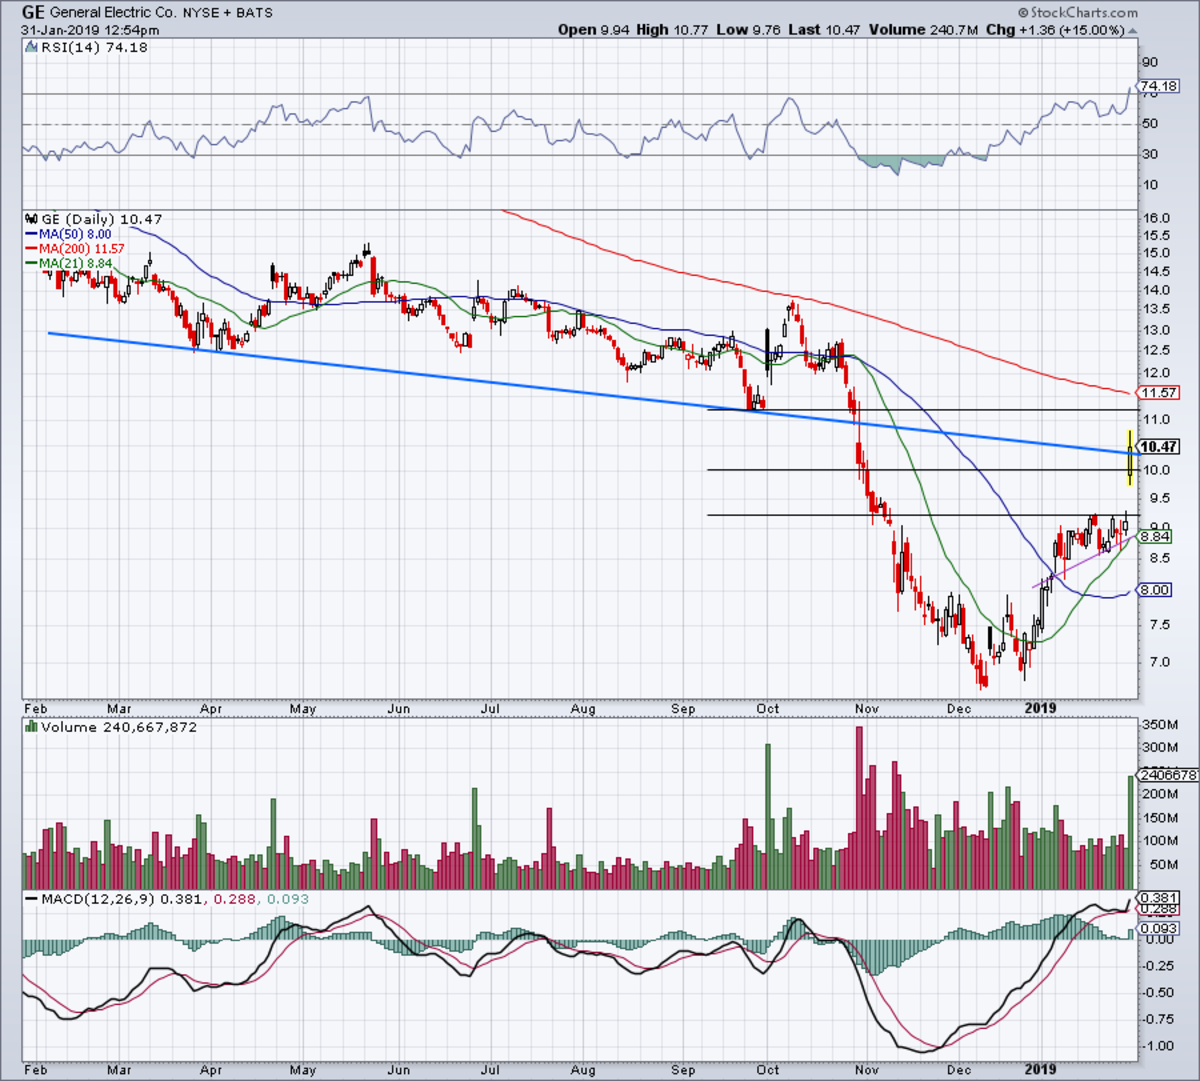 One-year daily chart of GE stock